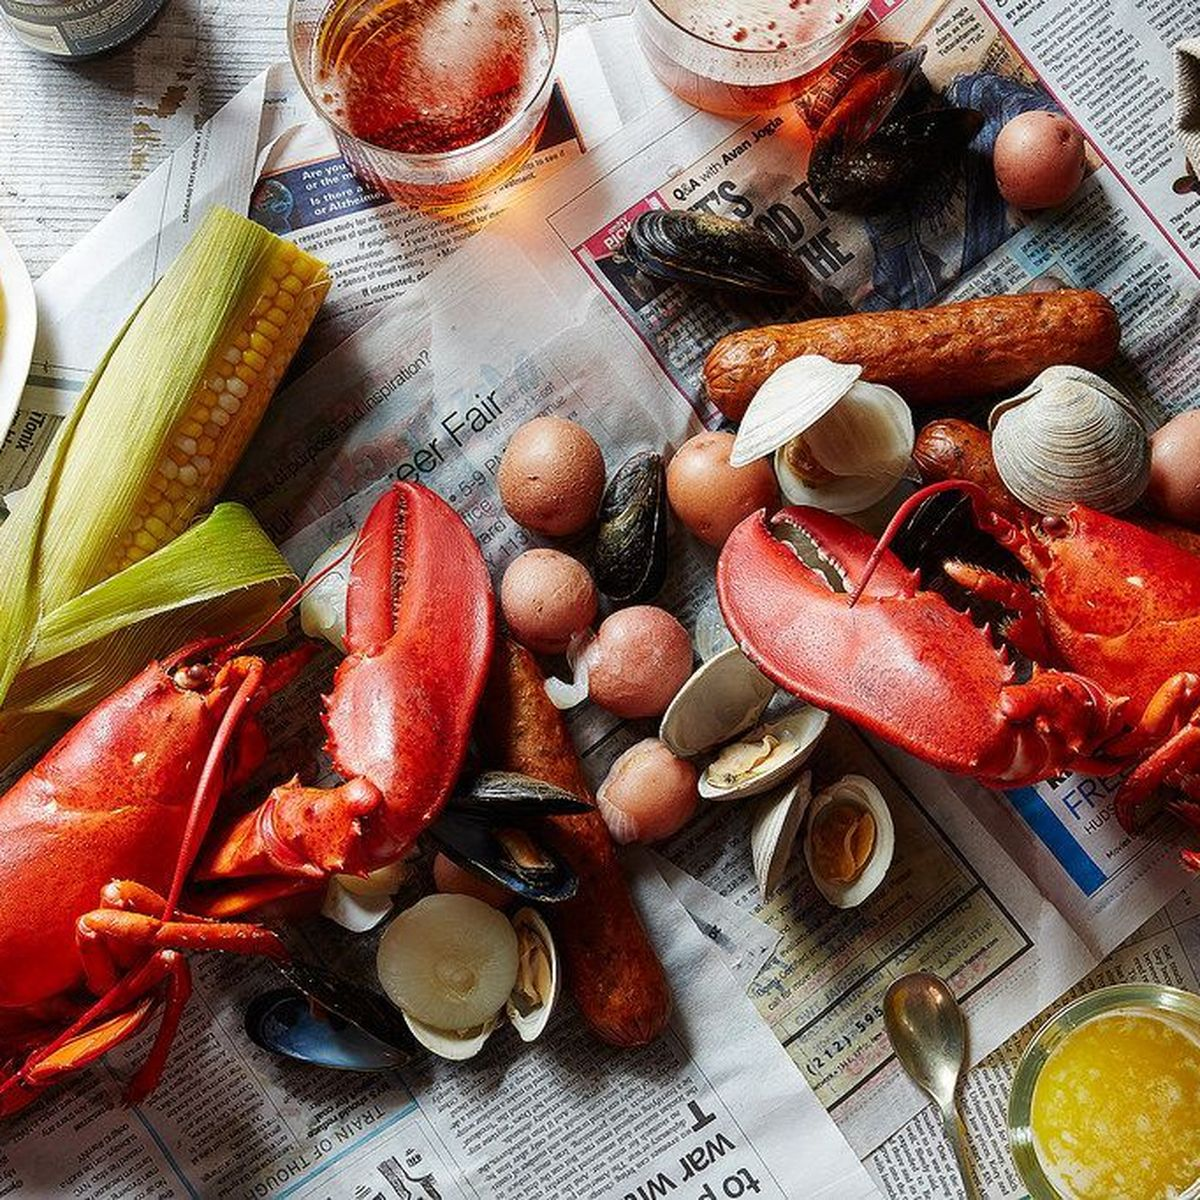 How To Throw A Lobster Boil For 10